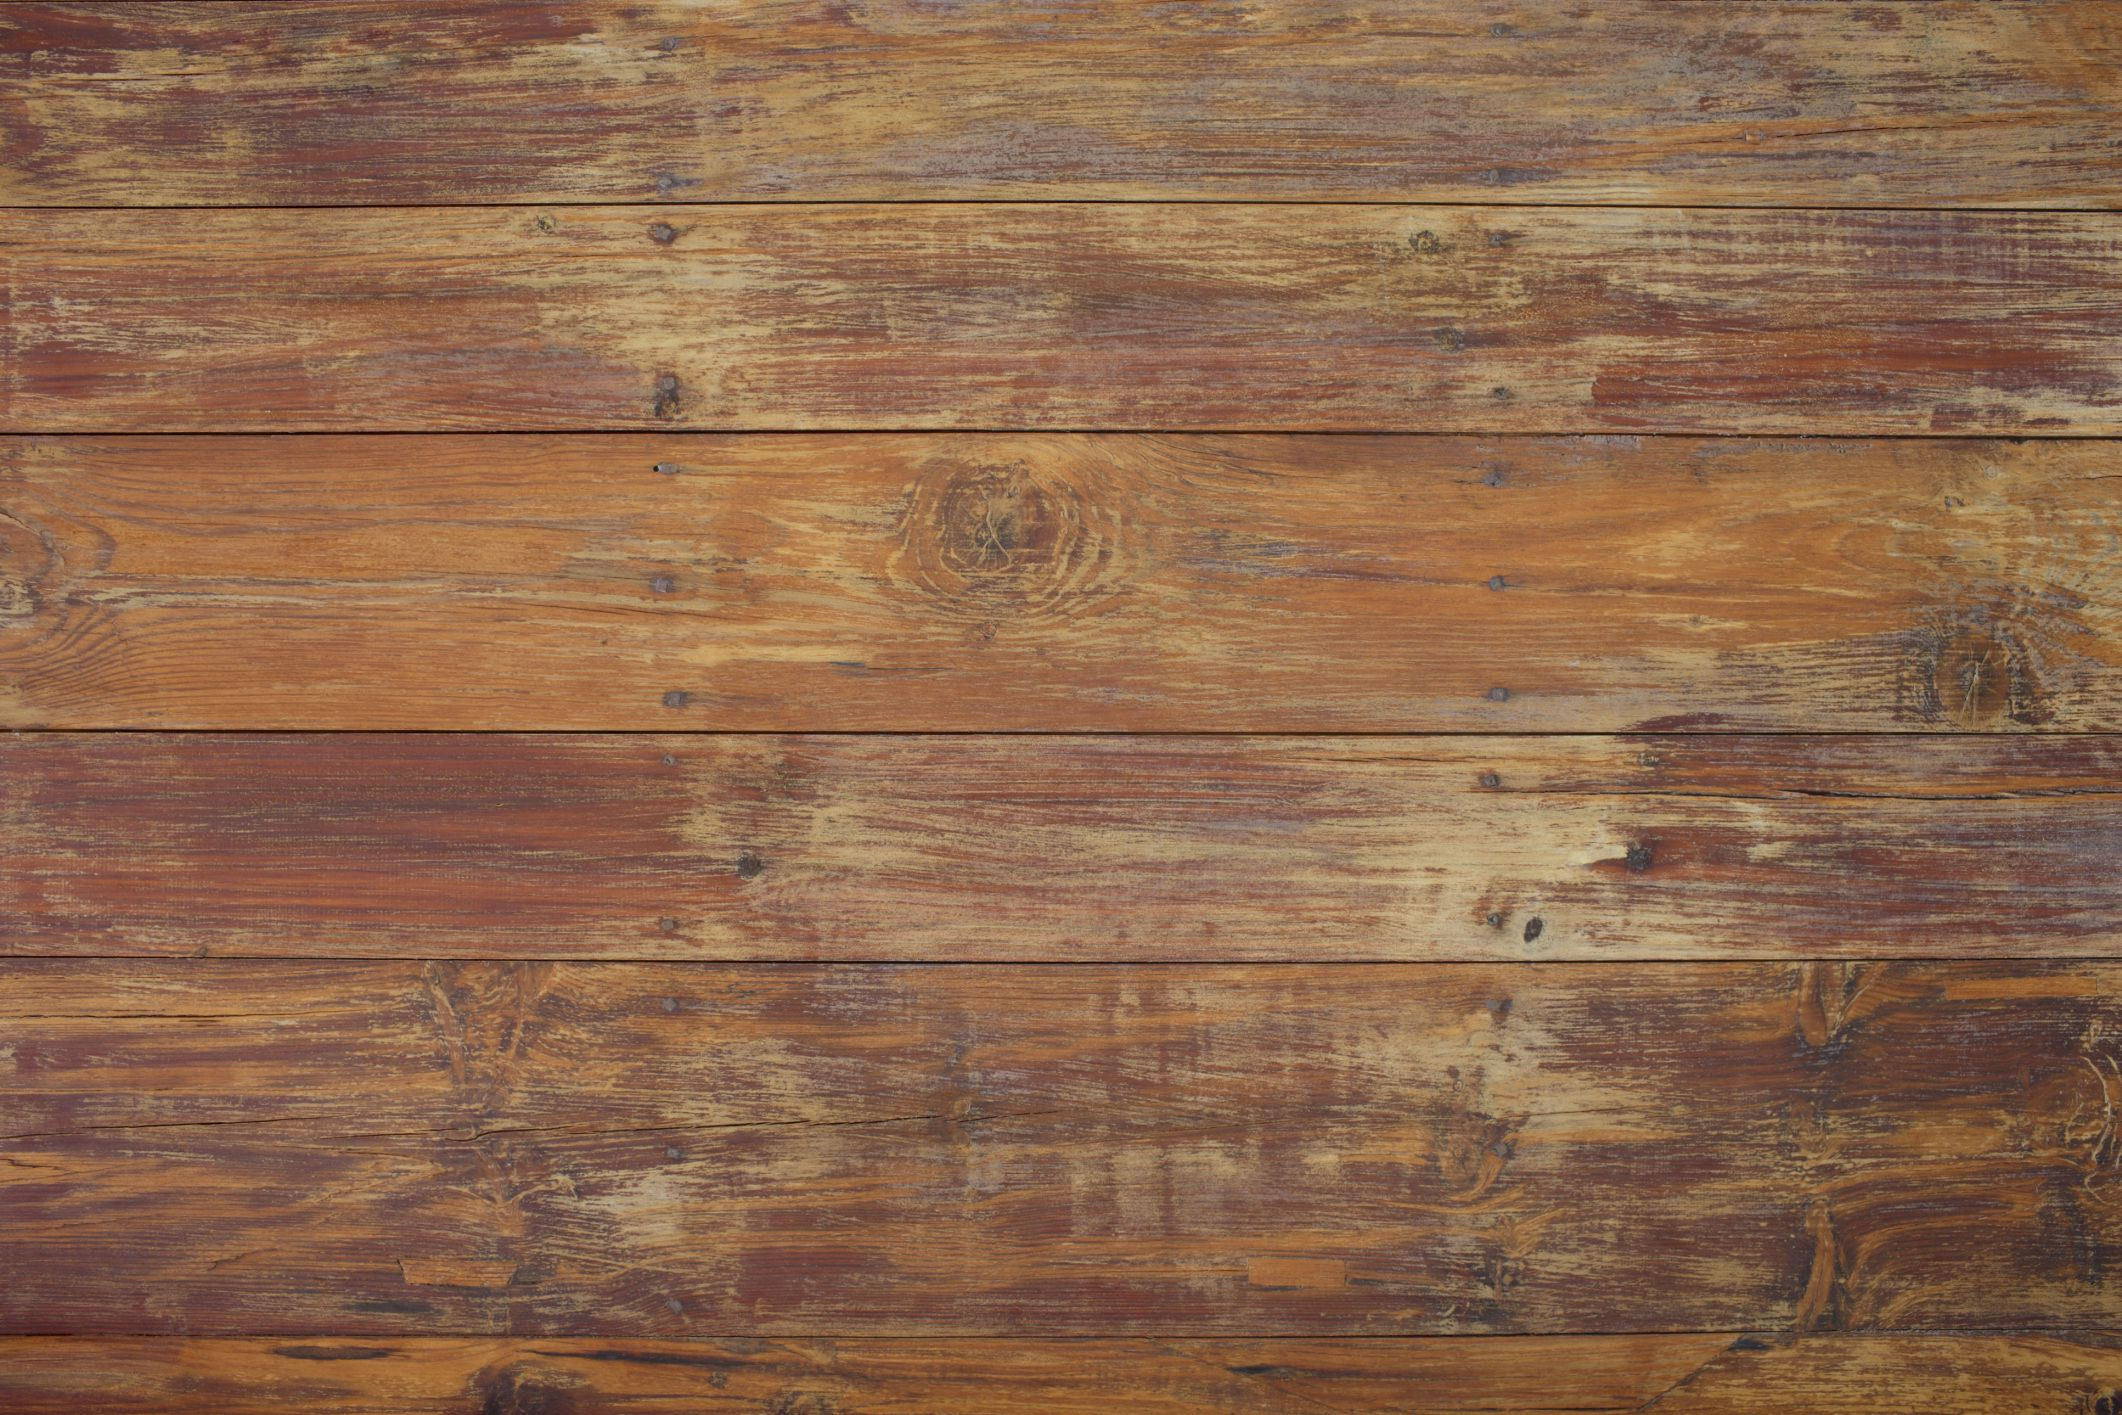 Can You Install Hardwood Floors In A Basement Of How to Level A Slanted Sloping Floor for Oldslopingfloor 200378187 001 570d37d25f9b581408747176